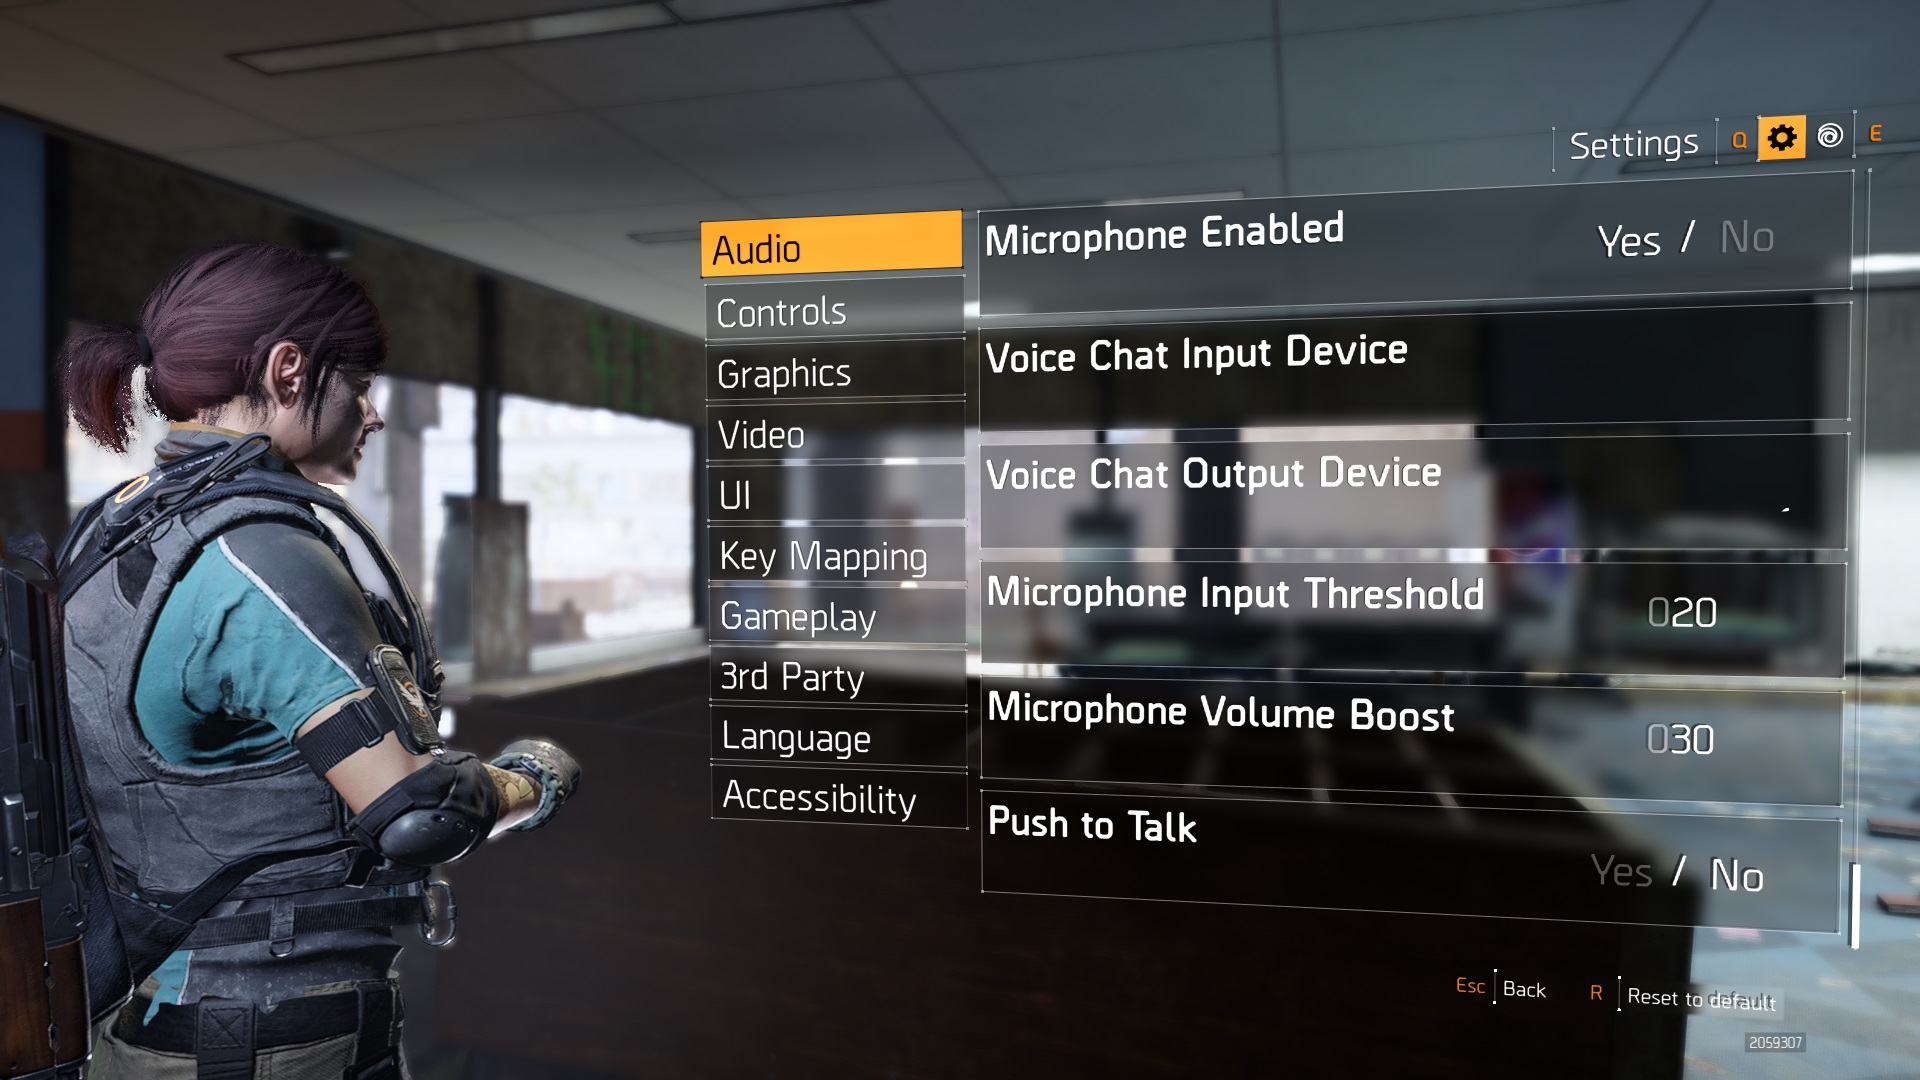 The Division 2 Microphone Options